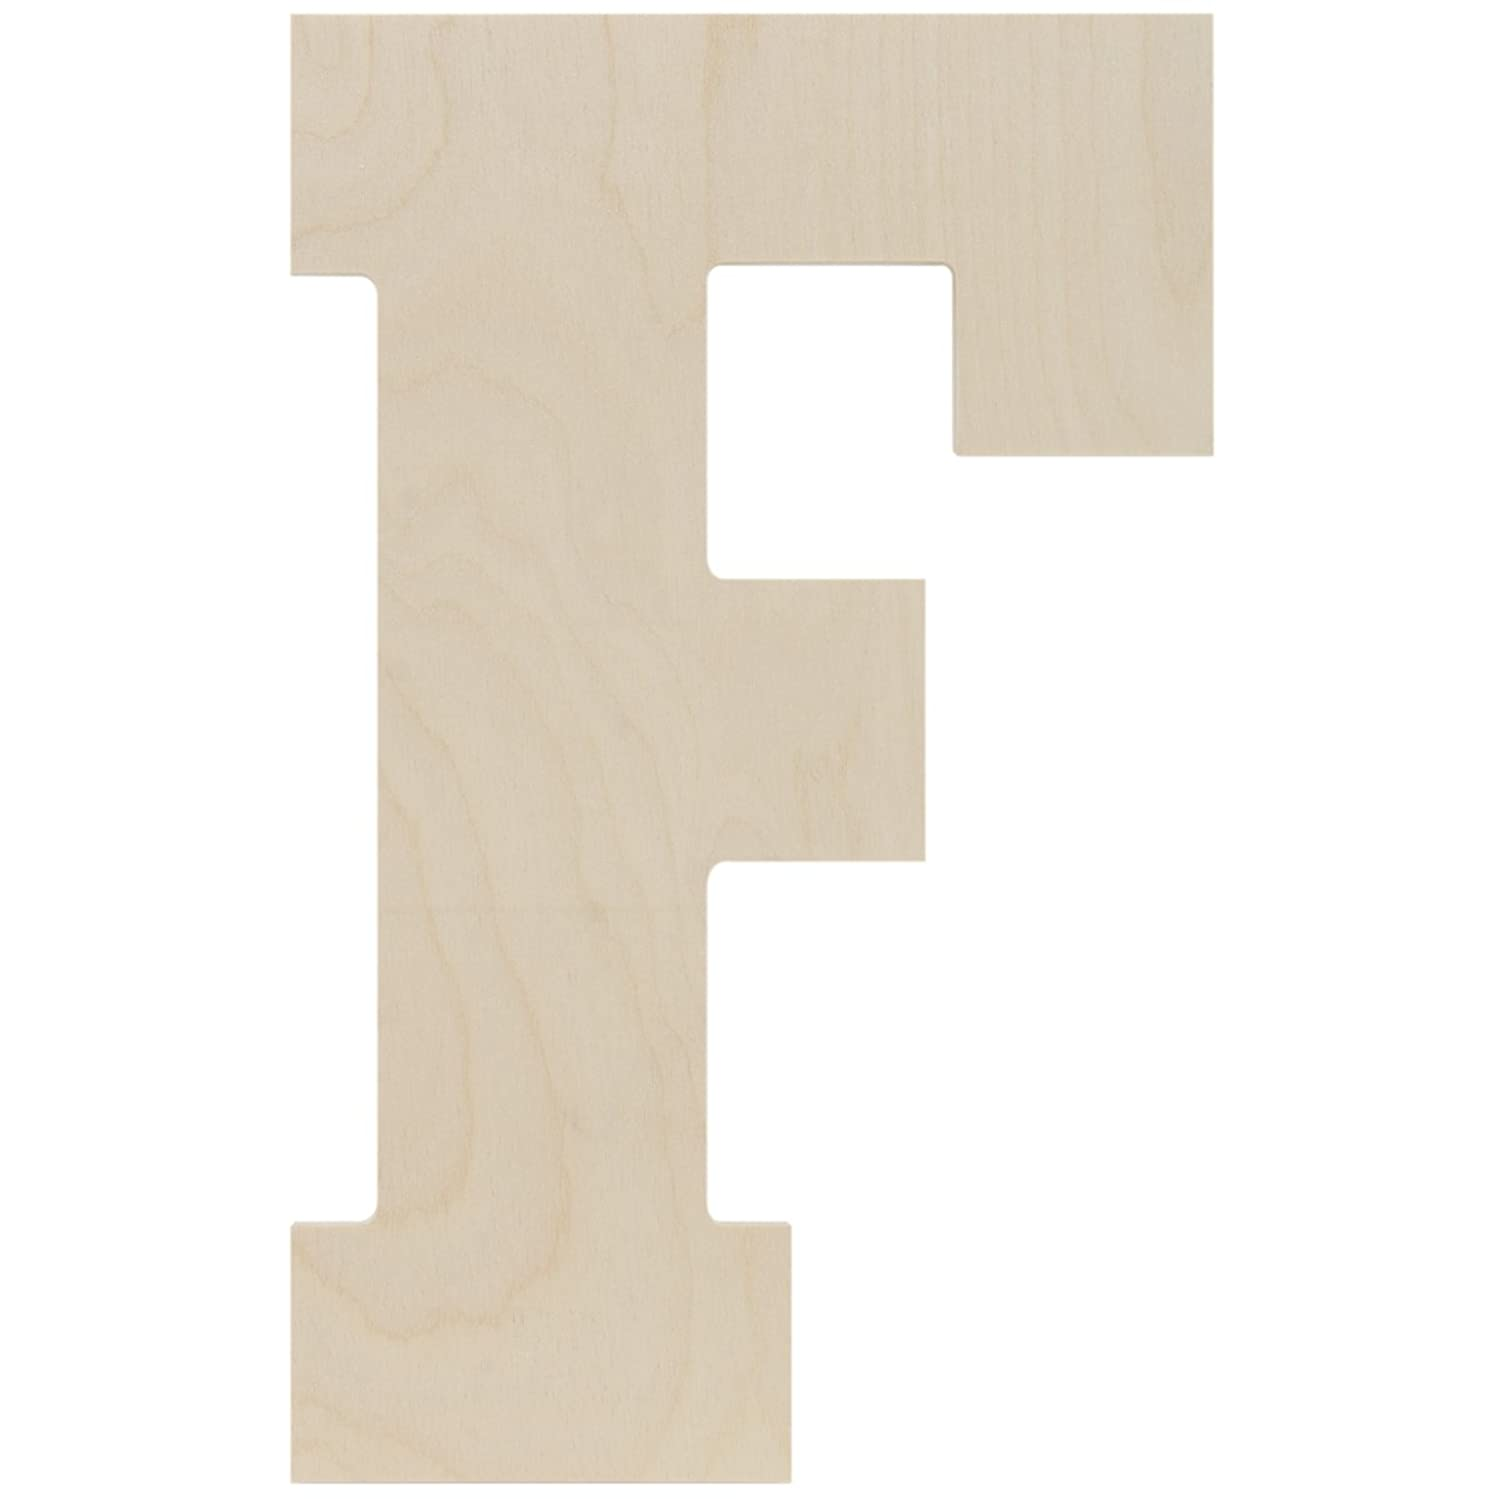 MPI Baltic Birch Collegiate Font Letters and Numbers, 13.5-Inch, Letter F